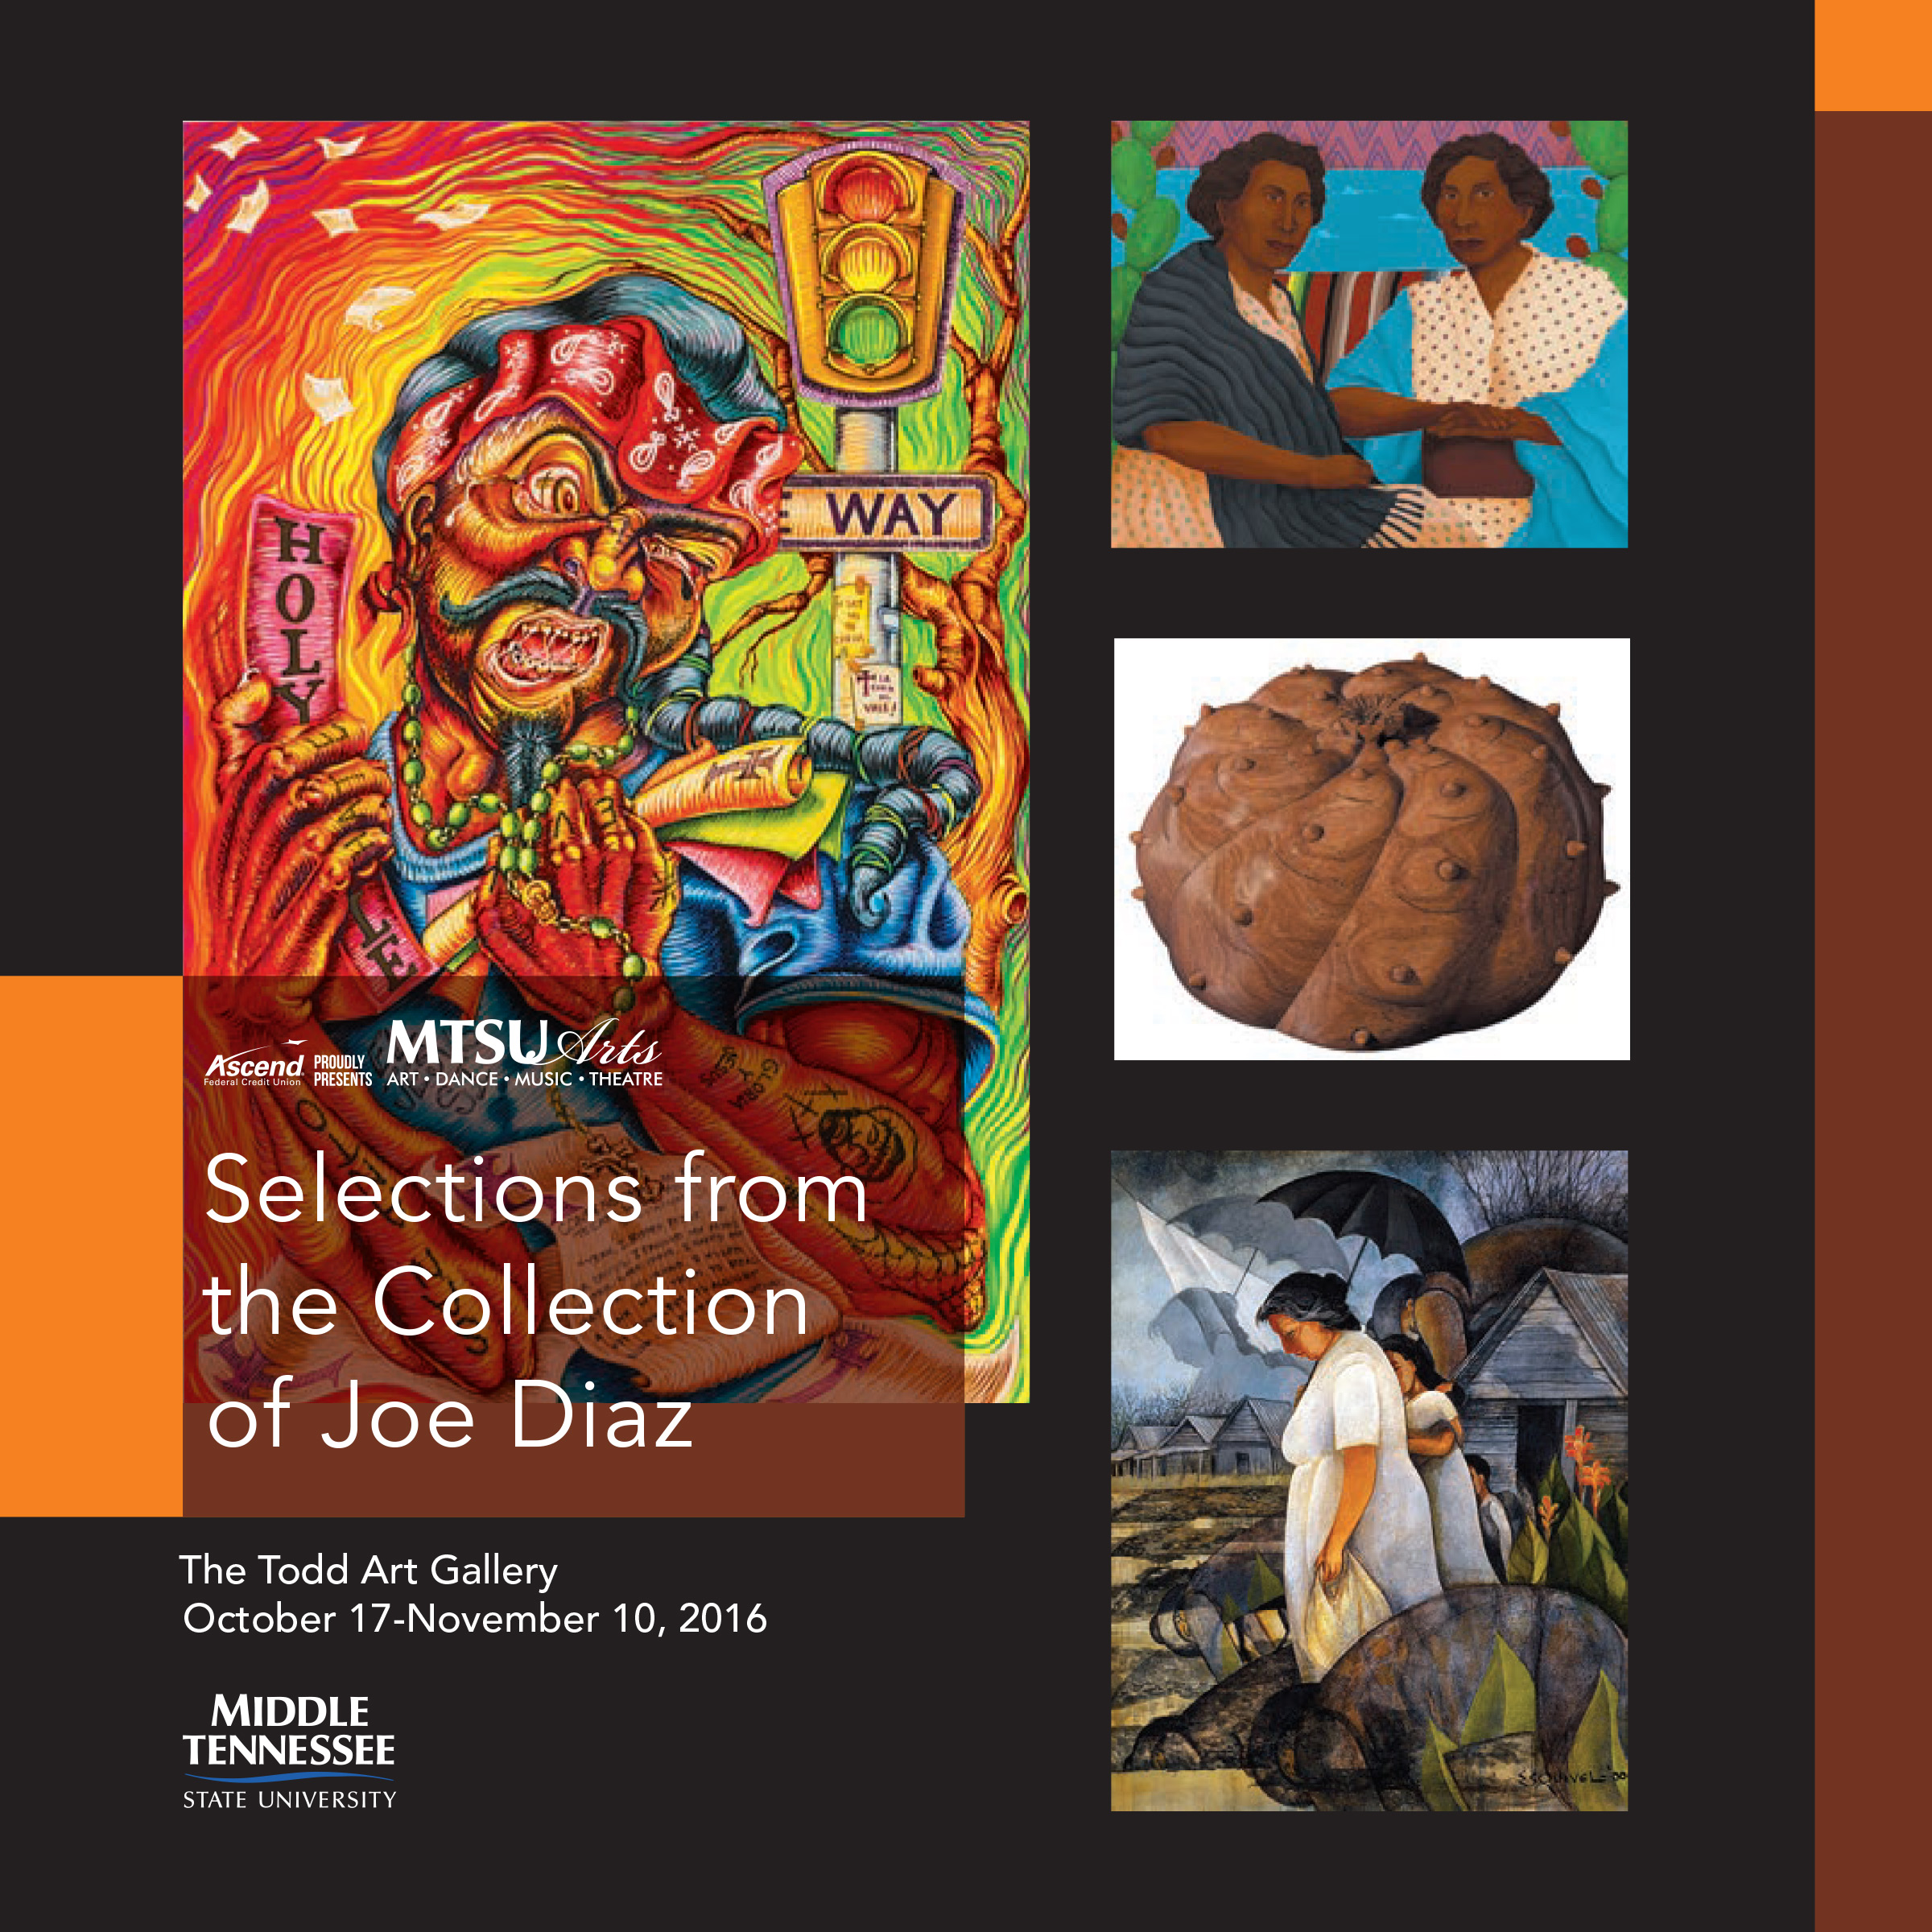 The Joe Diaz collection to be featured at MTSU on Monday